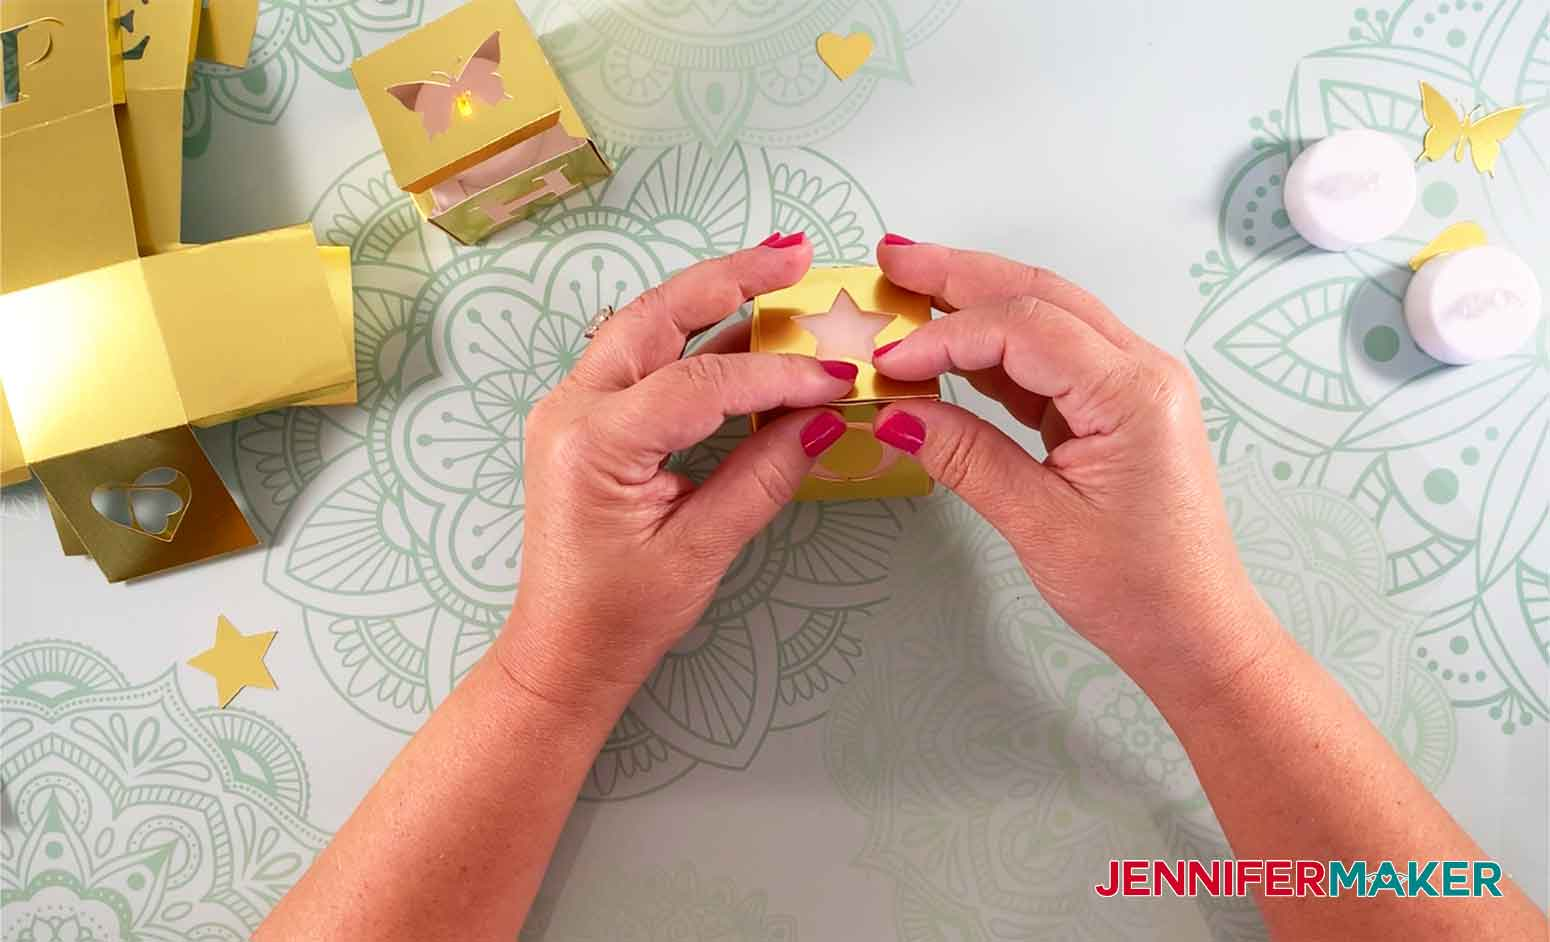 HOPE-Light-Up-Letter-Blocks-JenniferMaker-Closing-Block-Top